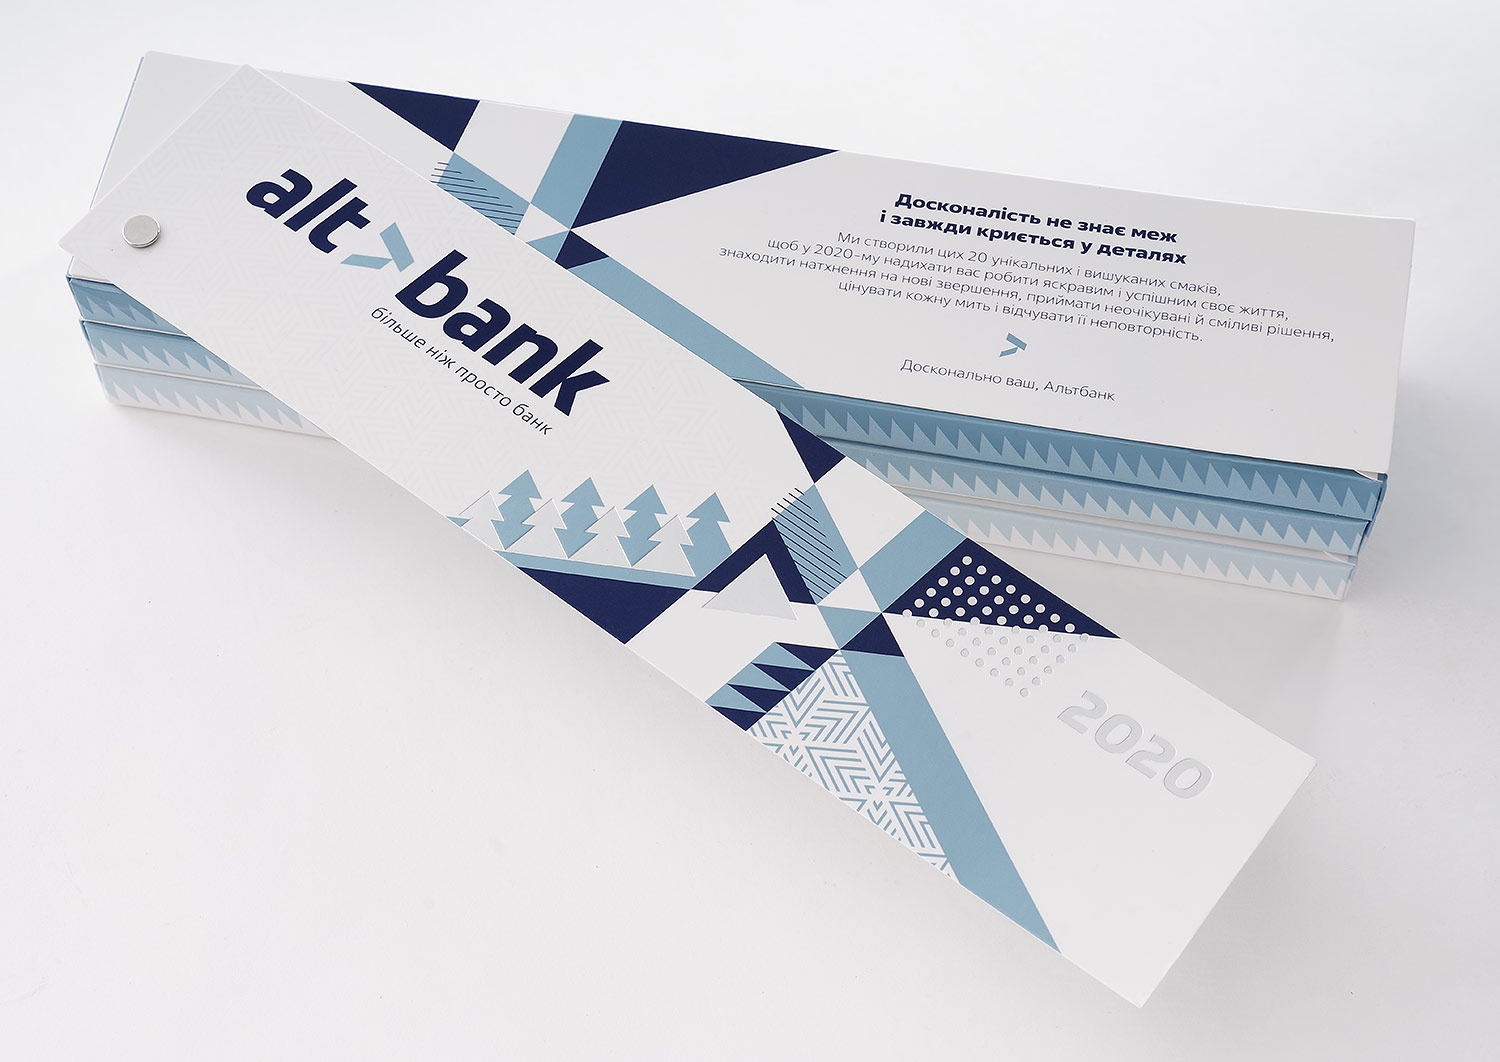 Chocolate packaging, Pantone 8201 blue silver, fan with holniten, stylish modern geometric design and illustration, Swedish design and style, geometry in design for Altbank bank.